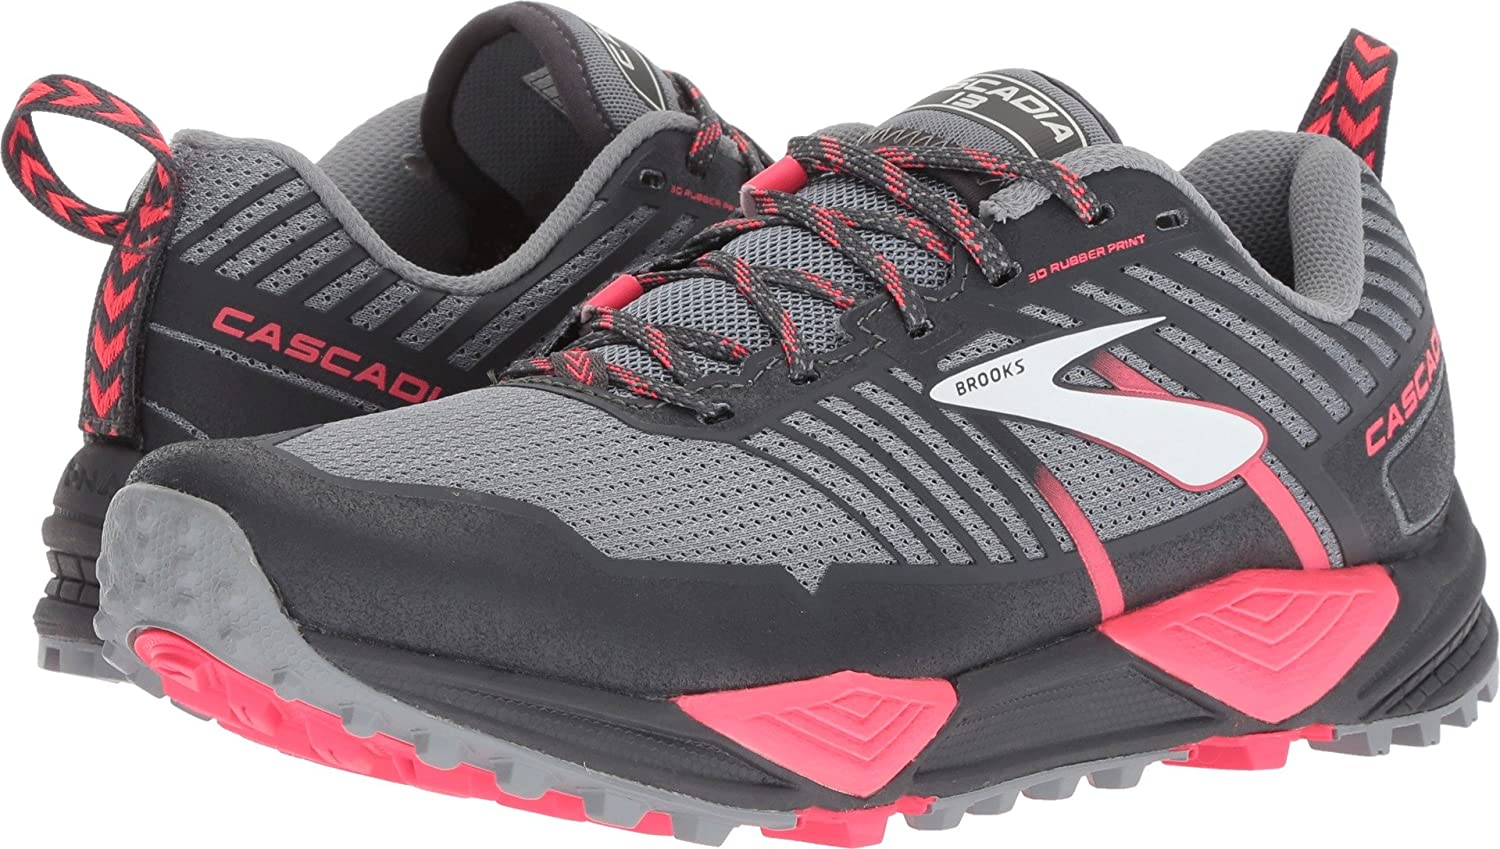 Brooks Womens Cascadia 13 B07889X89J 7 B(M) US|Grey/Grey/Pink